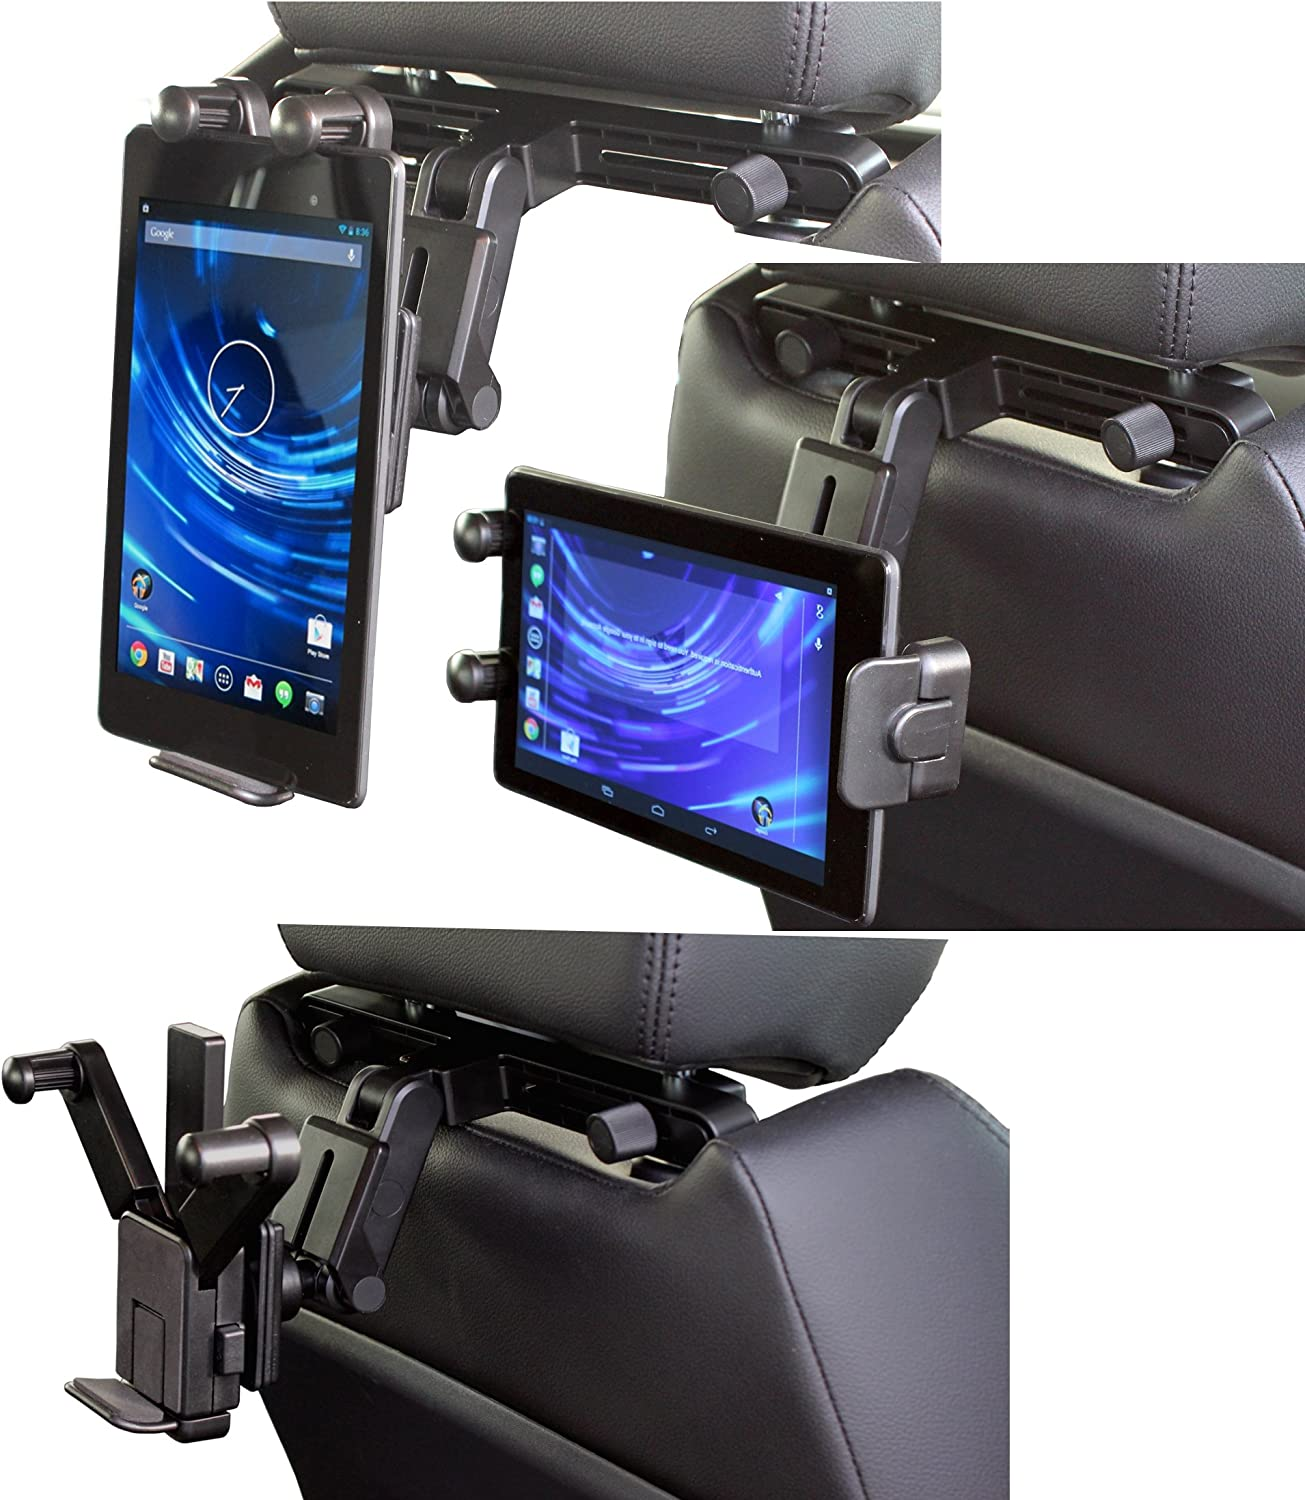 Navitech In Car Back Seat Headrest Mount Compatible With The Acer Iconia Tab A510 / Acer Iconia Tab A700 / Acer Iconia Tab A200 / A210 / A211 / Acer Iconia W500 /w510 / Acer Iconia W510 / W511 / Acer Iconia A3